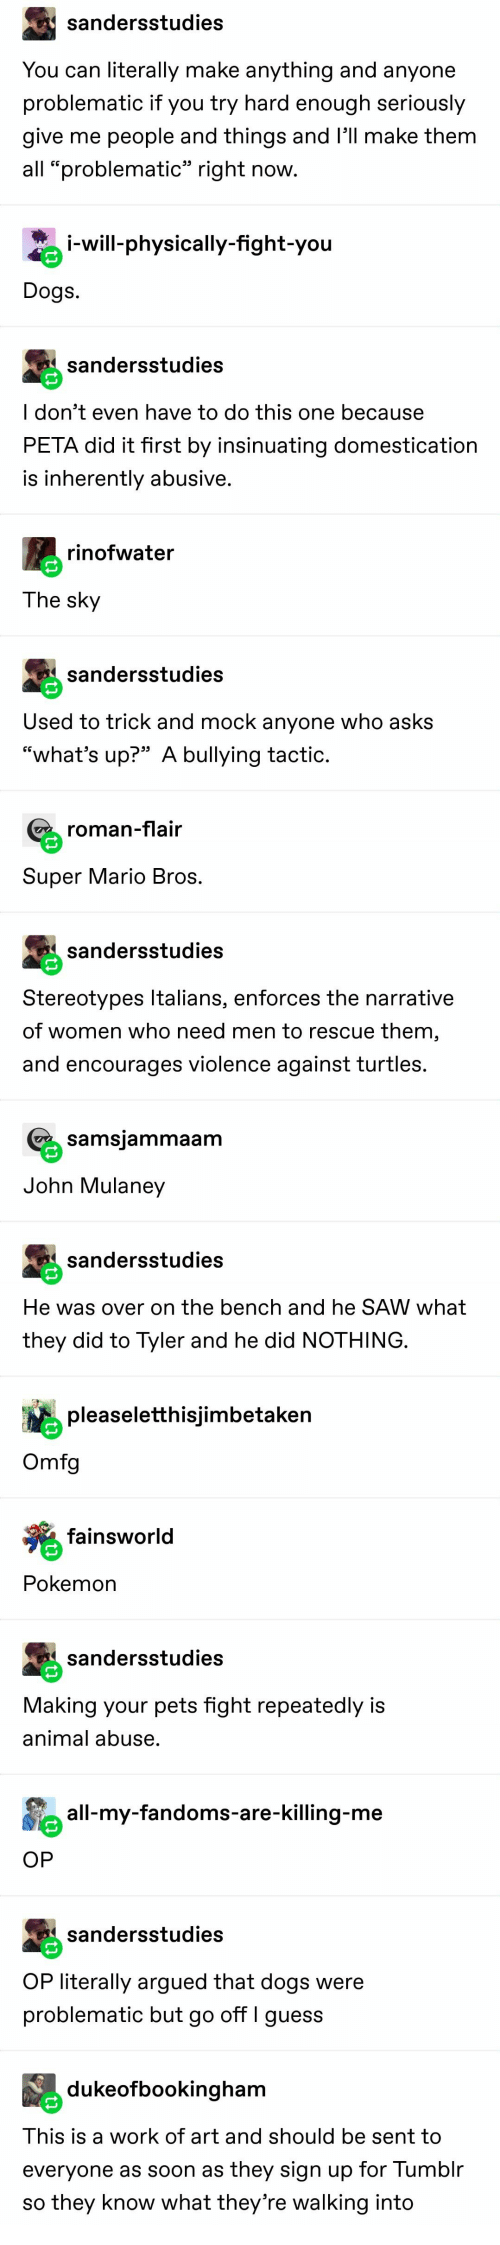 "Super Mario: sandersstudies  You can literally make anything and anyone  problematic if you try hard enough seriously  give me people and things and l'll make them  all ""problematic"" right now.  i-will-physically-fight-you  Dogs  sandersstudies  I don't even have to do this one because  PETA did it first by insinuating domestication  is inherently abusive.  rinofwater  The sky  sandersstudies  Used to trick and mock anyone who asks  ""what's up?"" A bullying tactic.  roman-flair  Super Mario Bros.  sandersstudies  Stereotypes Italians, enforces the narrative  of women who need men to rescue them,  and encourages violence against turtles.  samsjammaam  John Mulaney  sandersstudies  He was over on the bench and he SAW what  they did to Tyler and he did NOTHING.  pleaseletthisjimbetaken  Omfg  fainsworld  Pokemon  sandersstudies  Making your pets fight repeatedly is  animal abuse.  all-my-fandoms-are-killing-me  OP  sandersstudies  OP literally argued that dogs were  problematic but go off I guess  dukeofbookingham  This is a work of art and should be sent to  everyone as soon as they sign up for Tumblr  so they know what they're walking into"